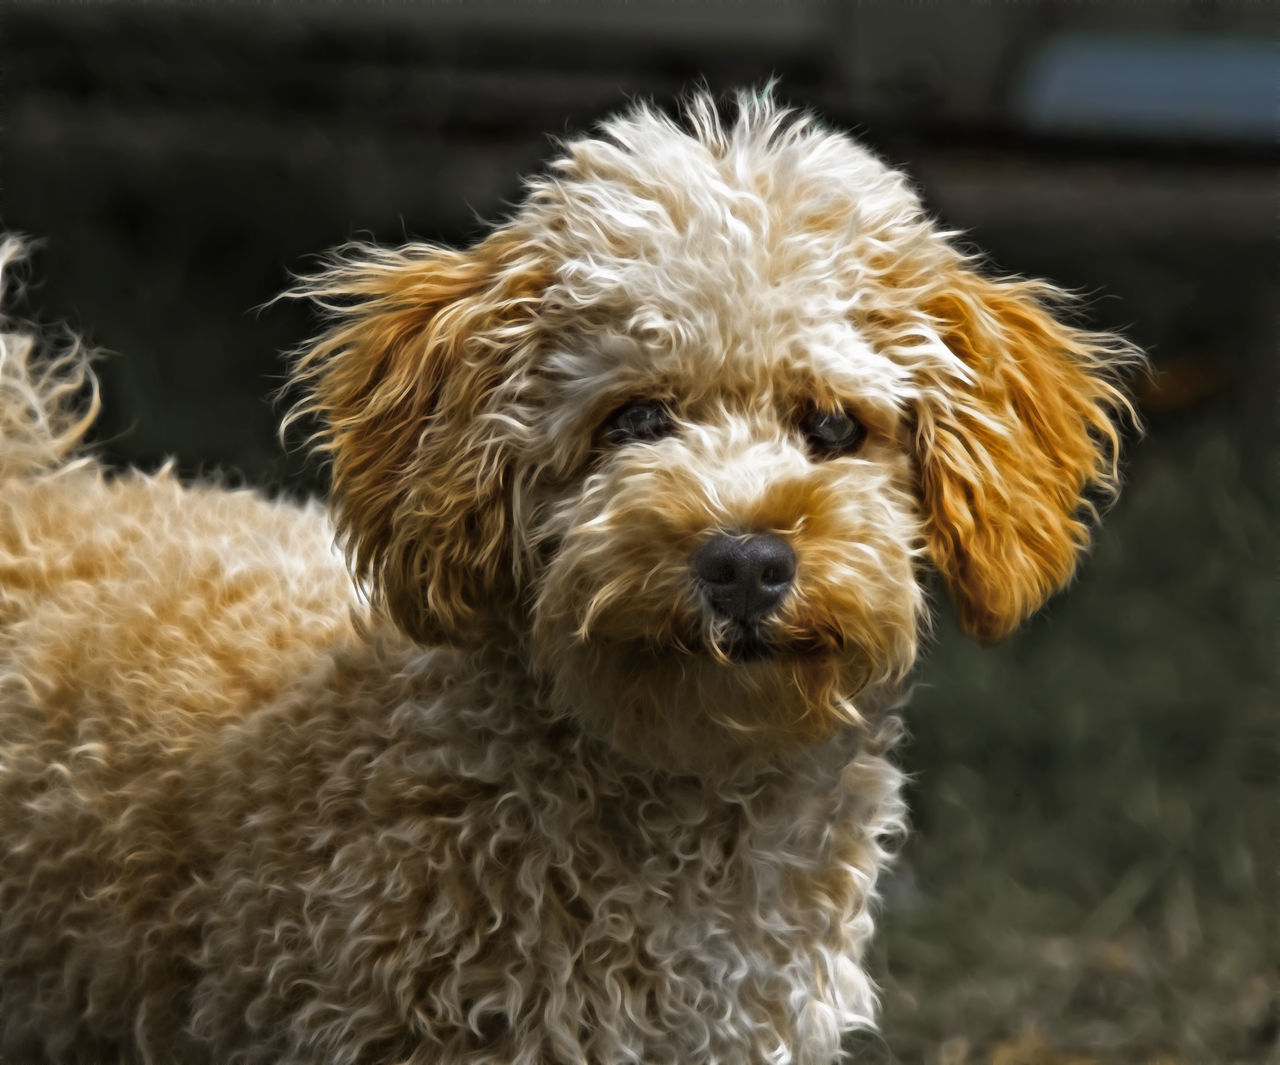 My Cavapoo puppy Barney. Animal Animal Hair Animal Themes Brown Comfortable Curiosity Cute Dog Domestic Animals Home Indoors  Looking At Camera Mammal No People One Animal Pets Portrait Relaxation Selective Focus Softness Zoology Dog Groomer Dog Food